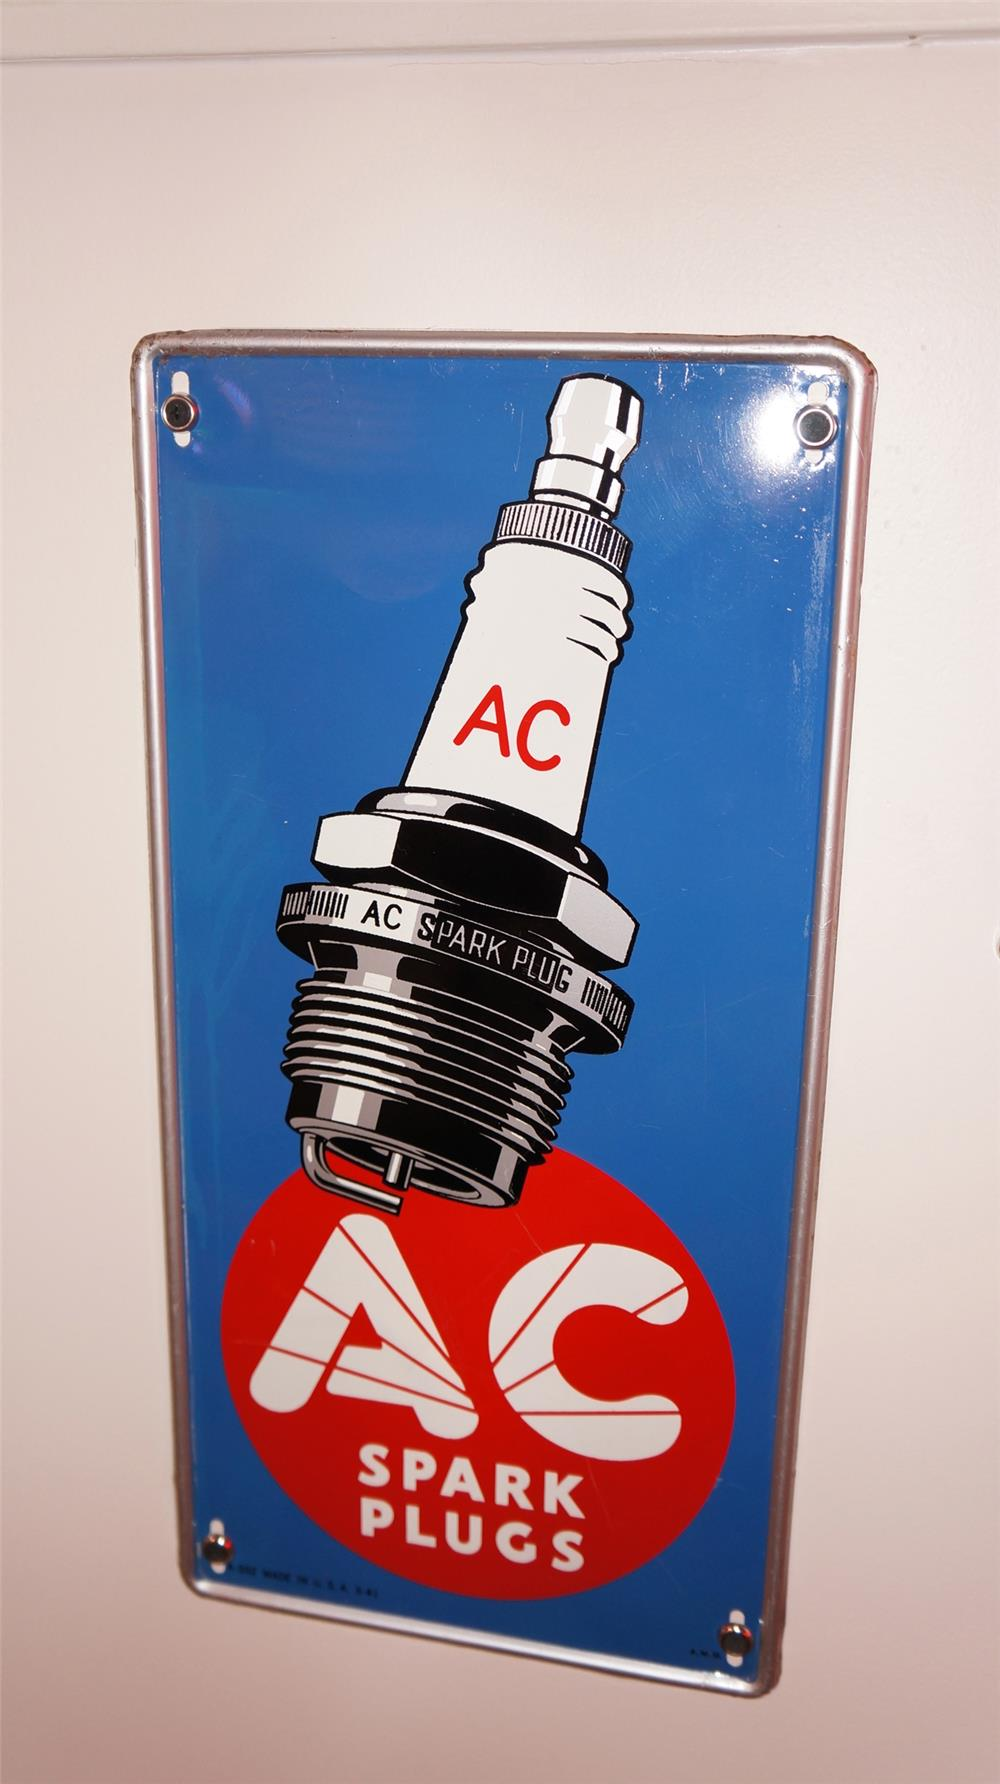 N.O.S. 1941 AC Spark Plugs self-framed vertical tin automotive garage sign with spark plug graphic. - Front 3/4 - 178930